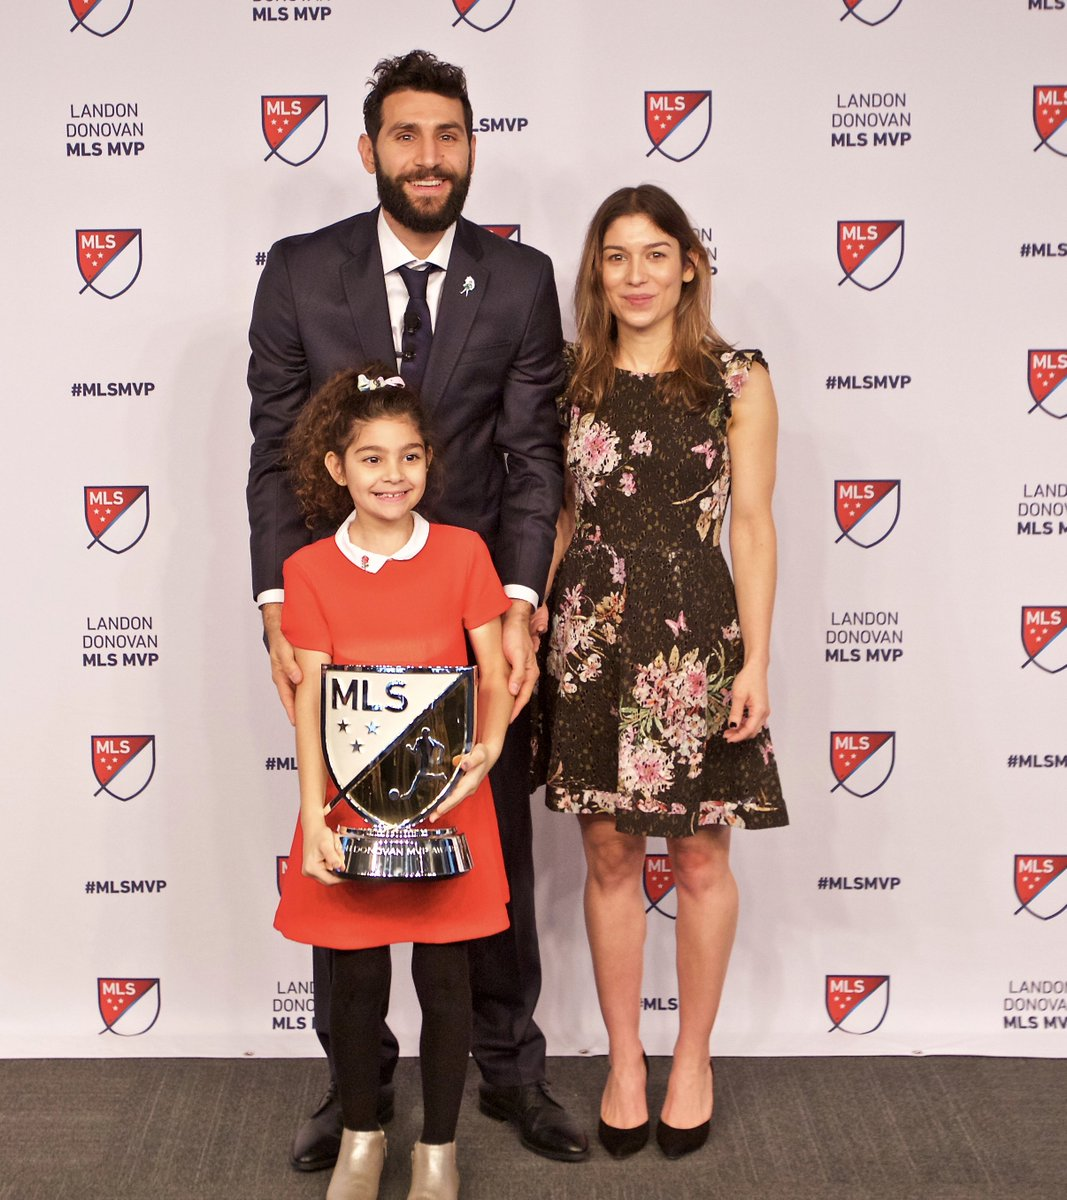 I am honored and happy to be named the 2017 Landon Donovan MLS MVP. Thank you all for your warm messages! https://t.co/JfHAKoA9IU